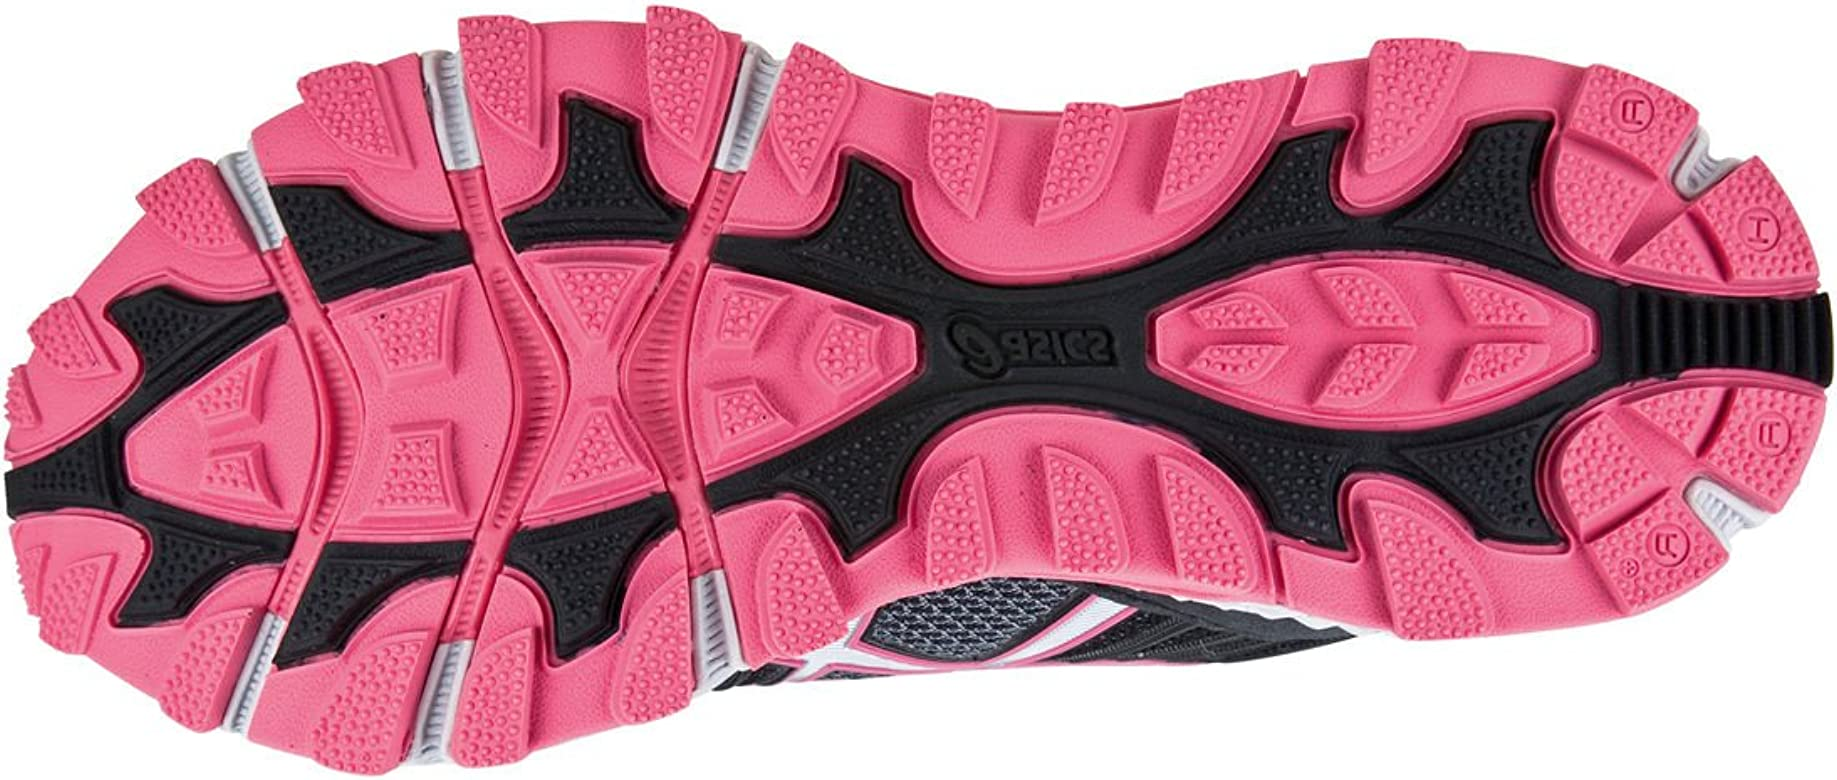 ASICS LADY GEL-FUJI TRABUCO Neutral GORE-TEX Agua Proof Zapatillas Para Correr - 39: Amazon.es: Zapatos y complementos